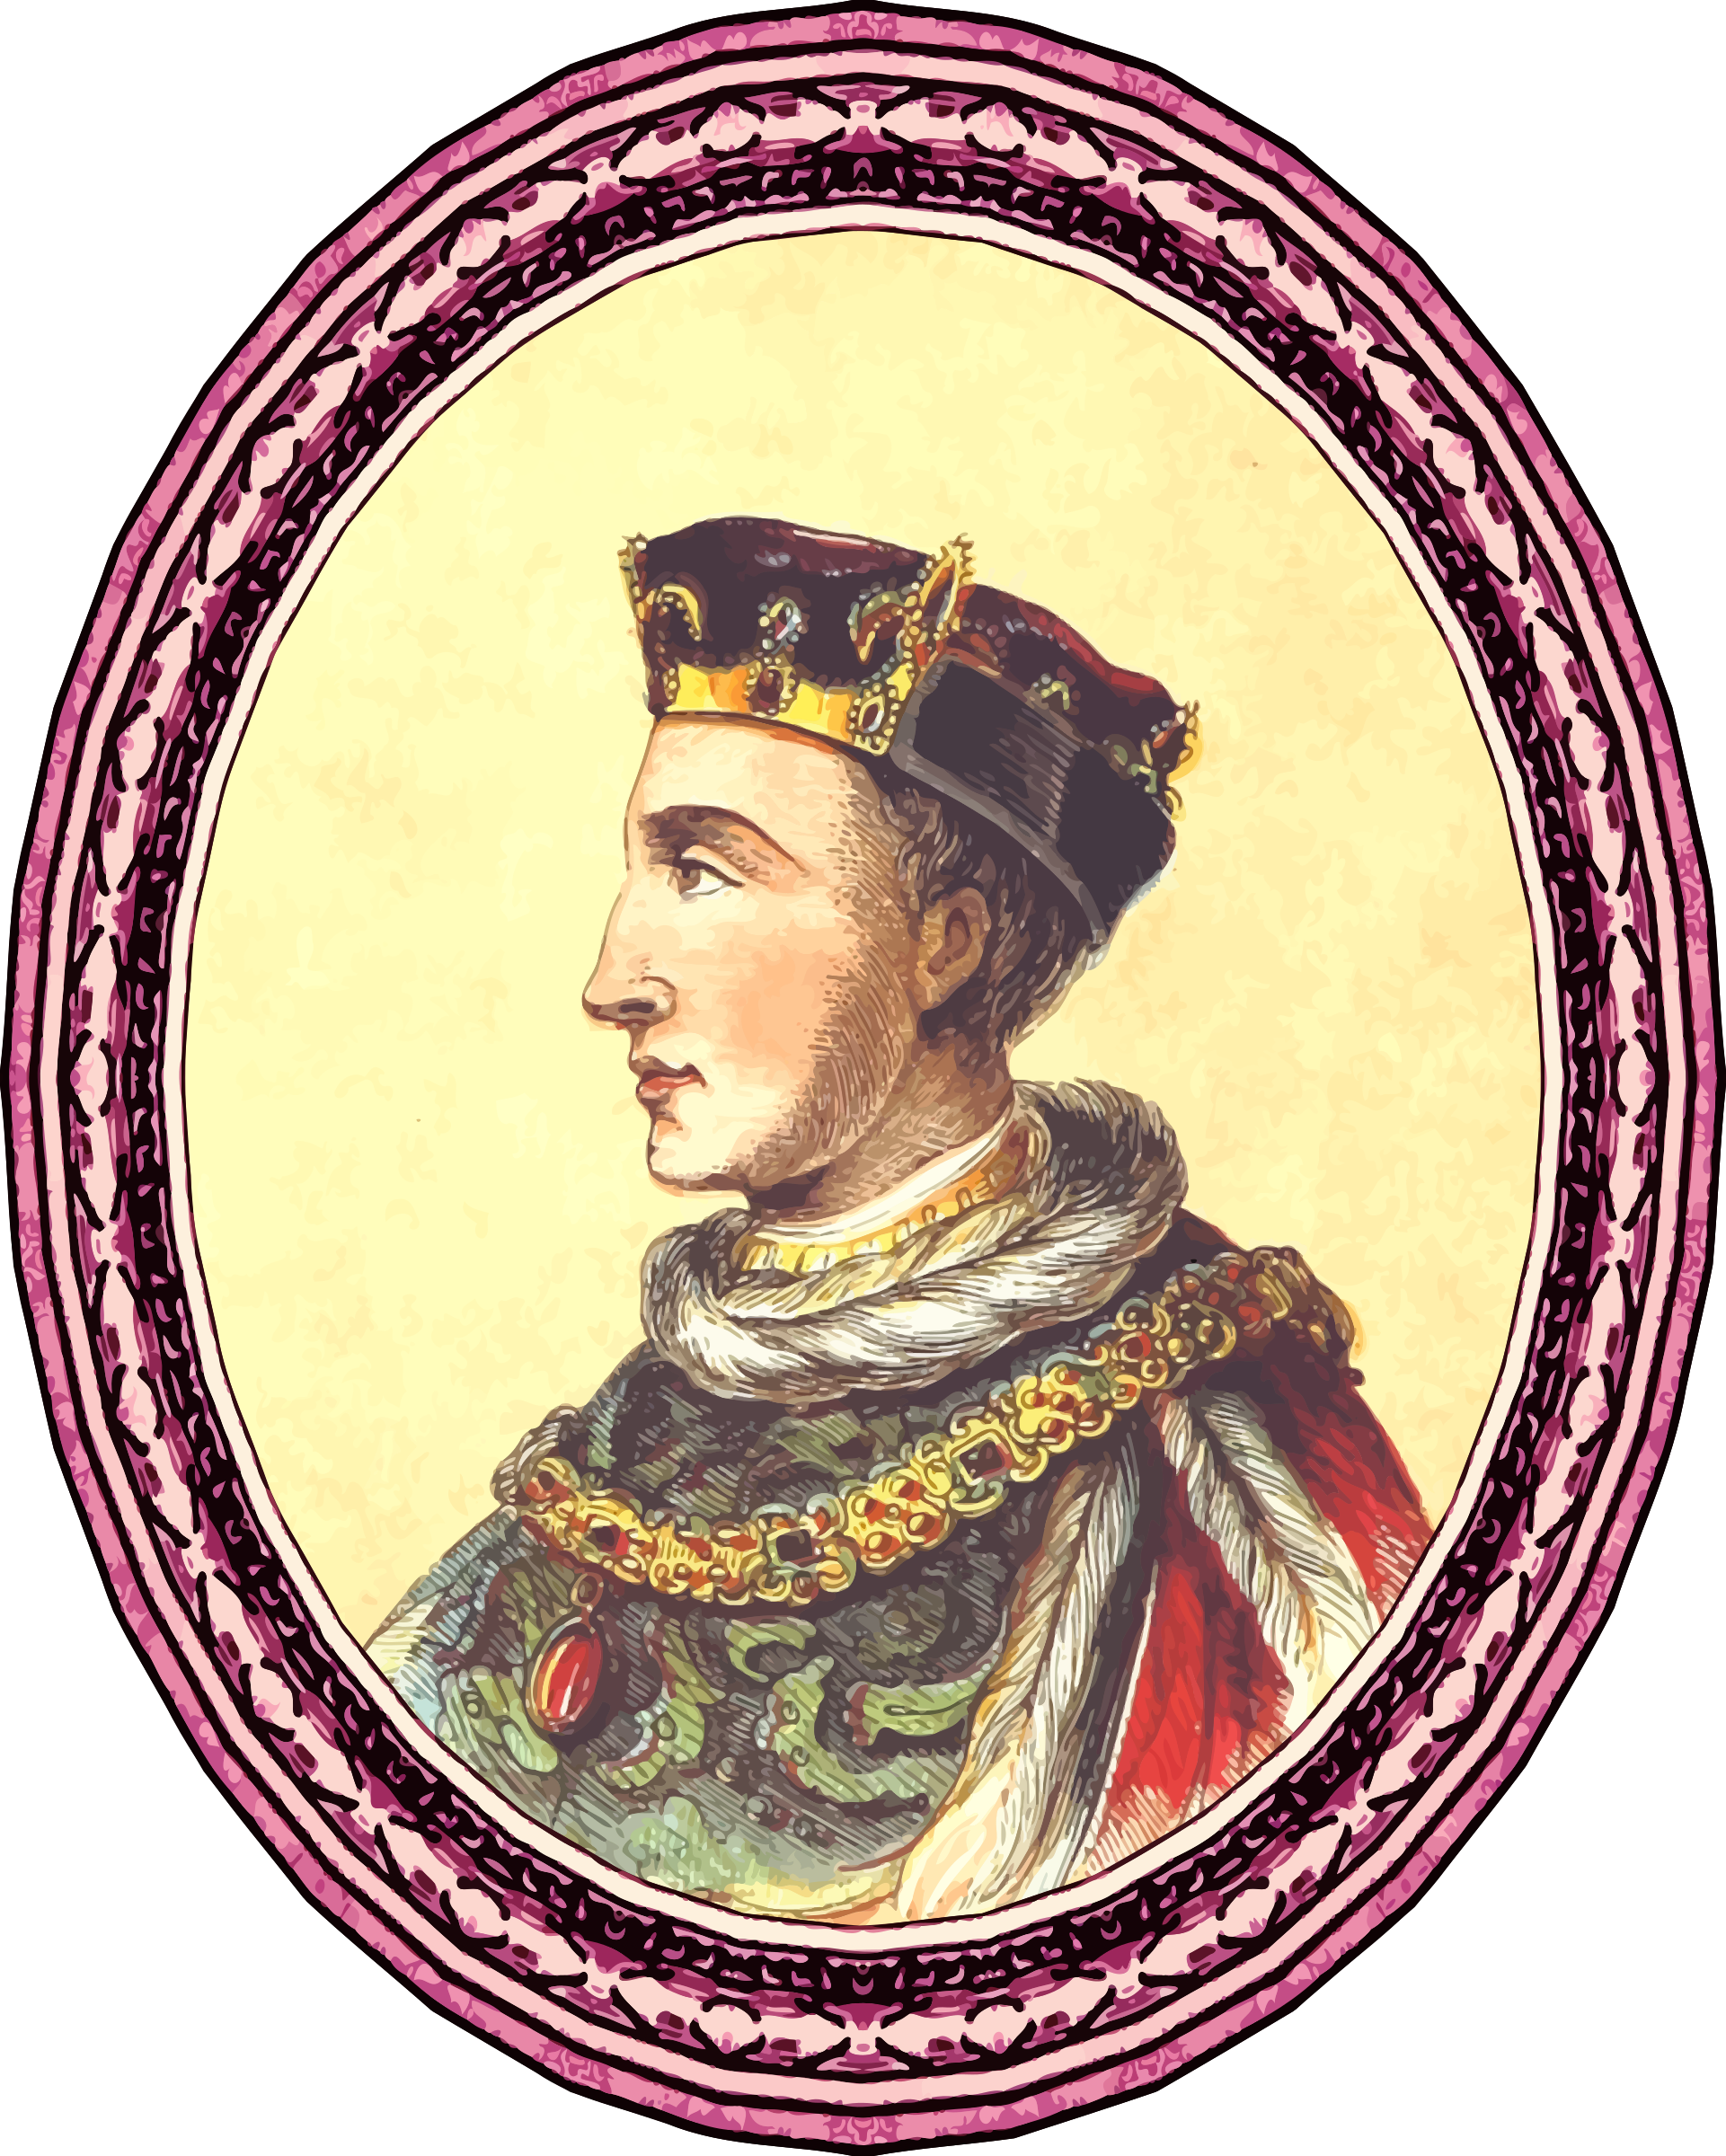 Henry V (framed) by Firkin